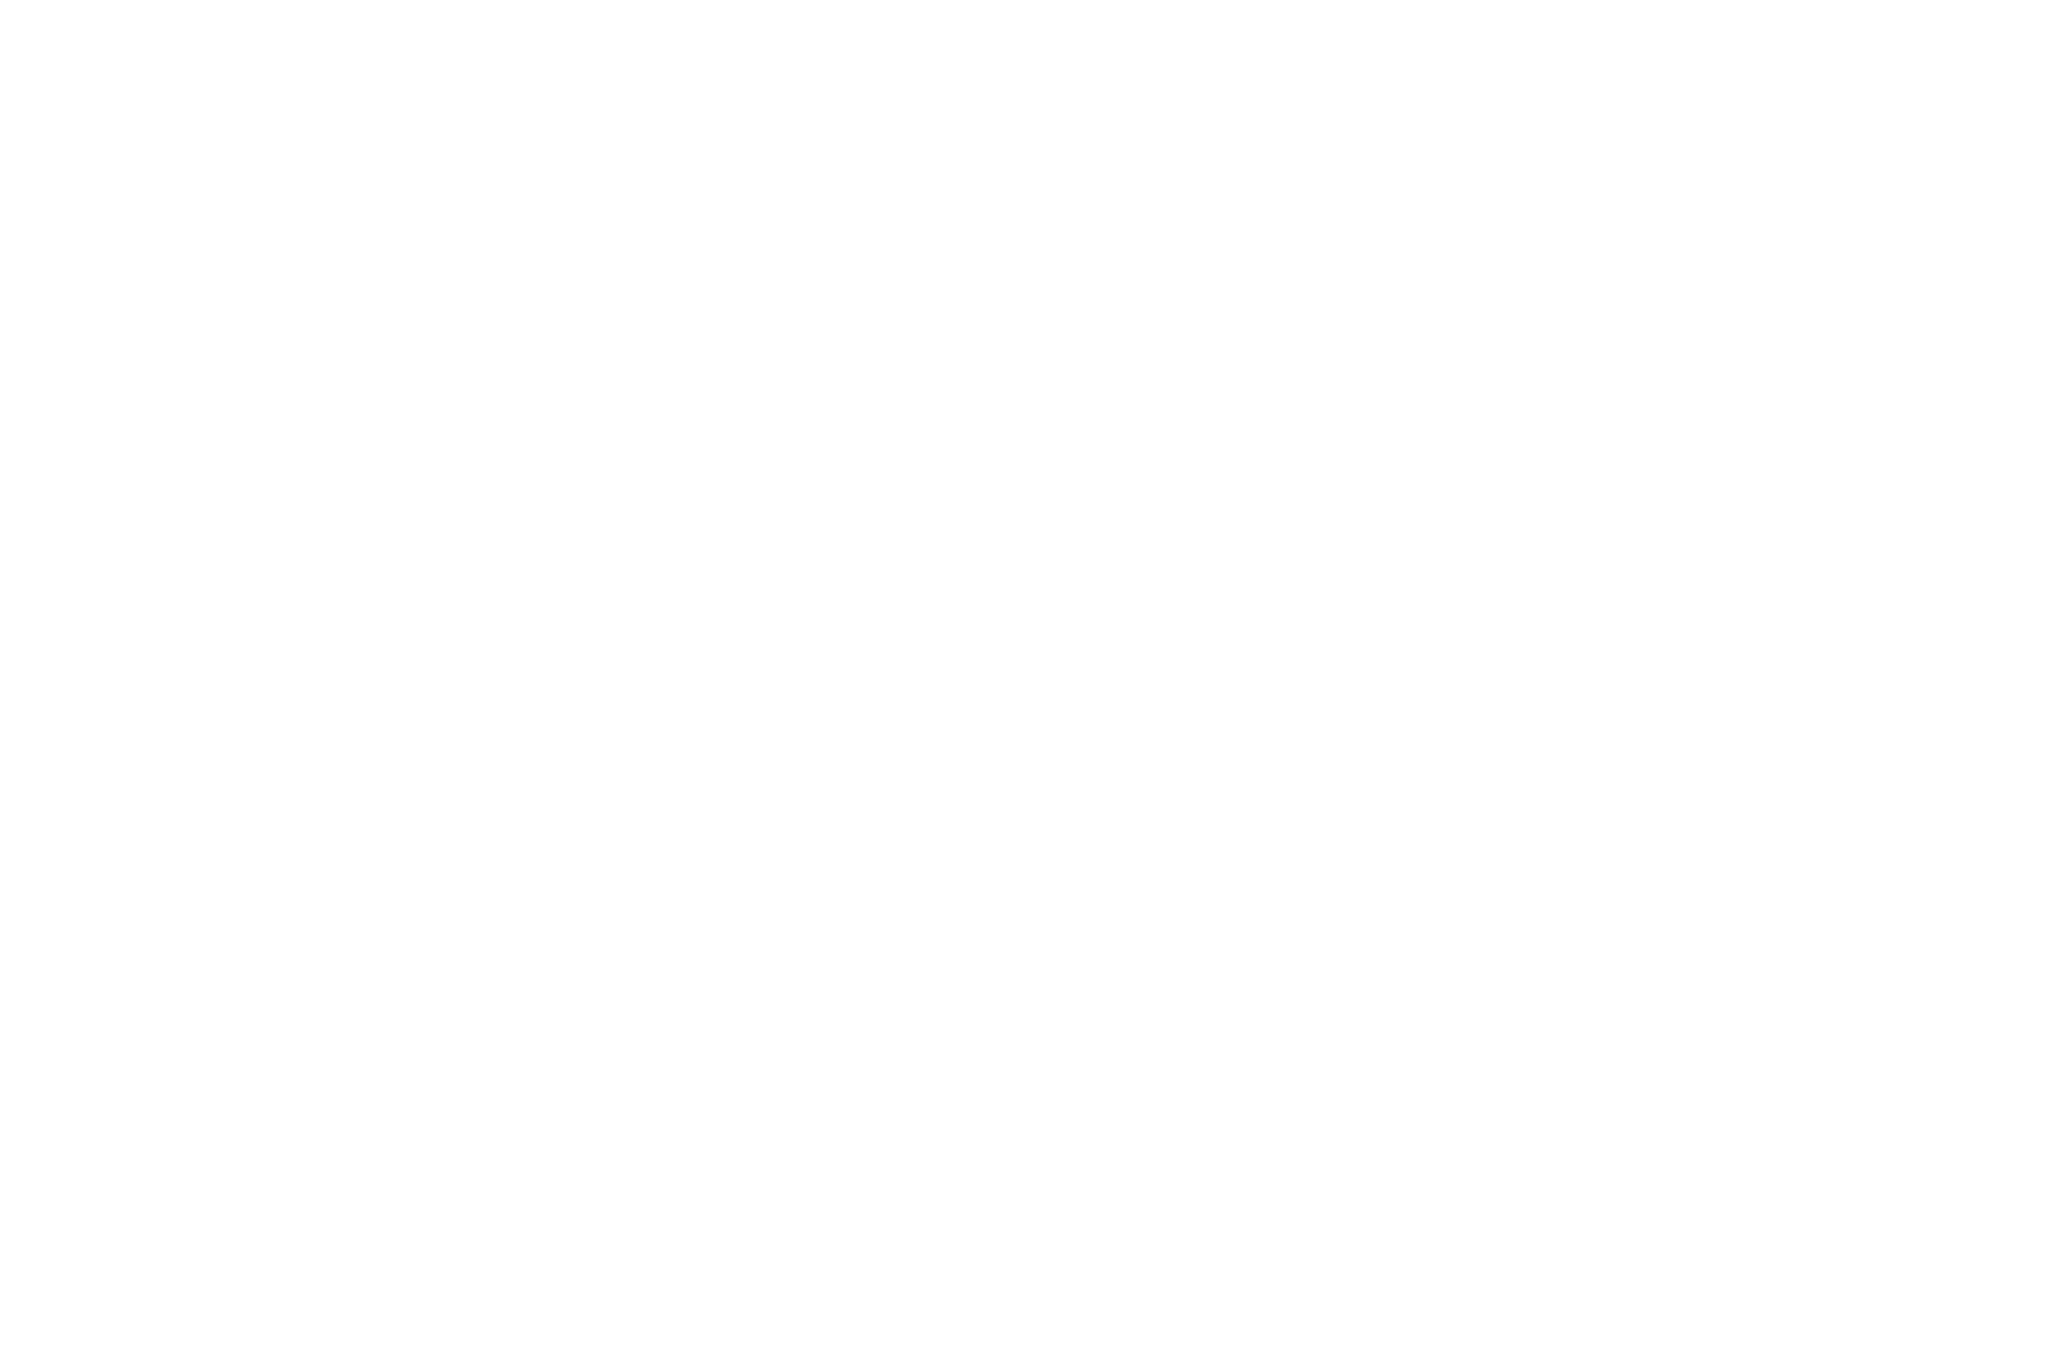 IRELAND'S YOUNG FILMMAKER OF THE YEAR 2021  AWARD WINNERS